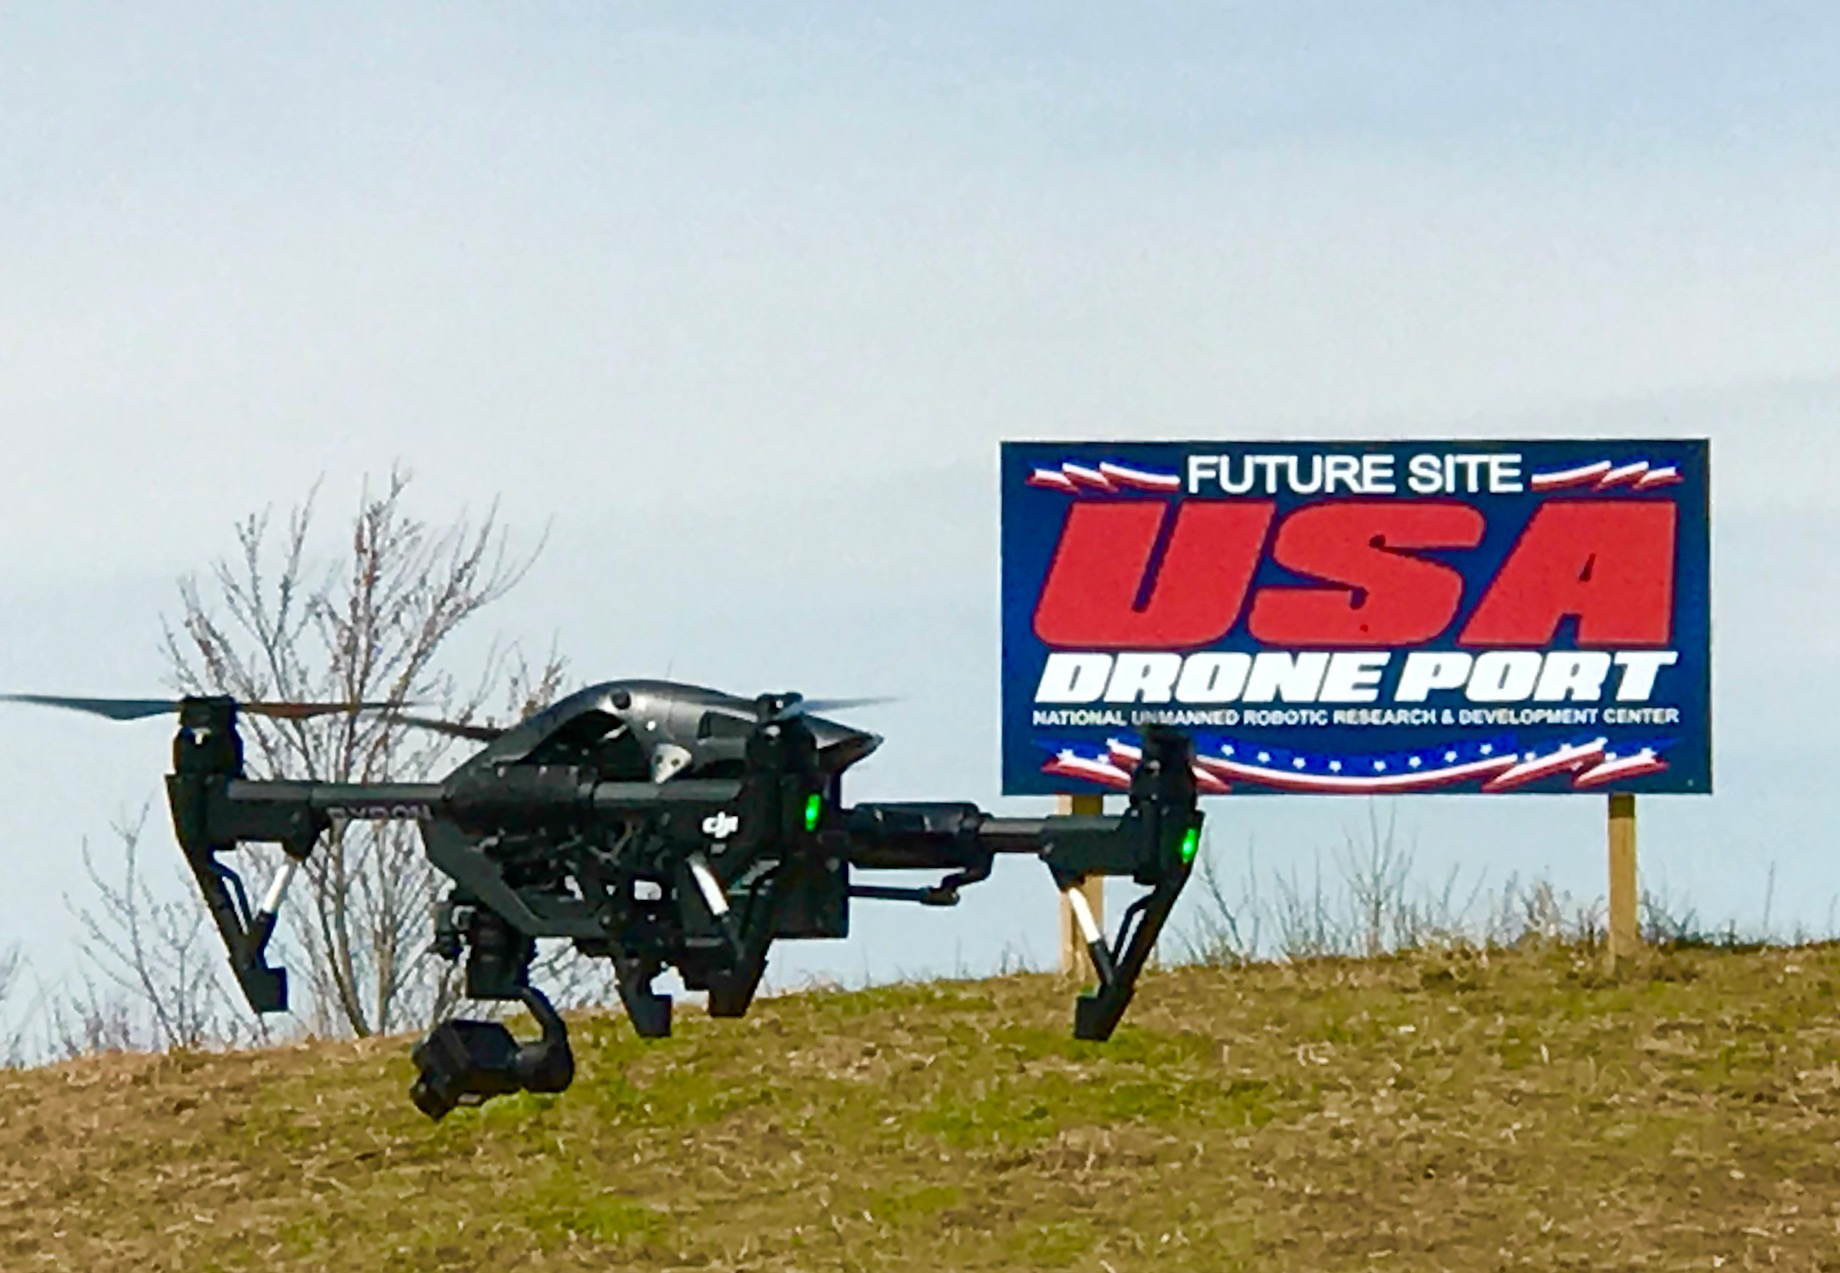 Inspire and USA Drone Port Sign.jpg